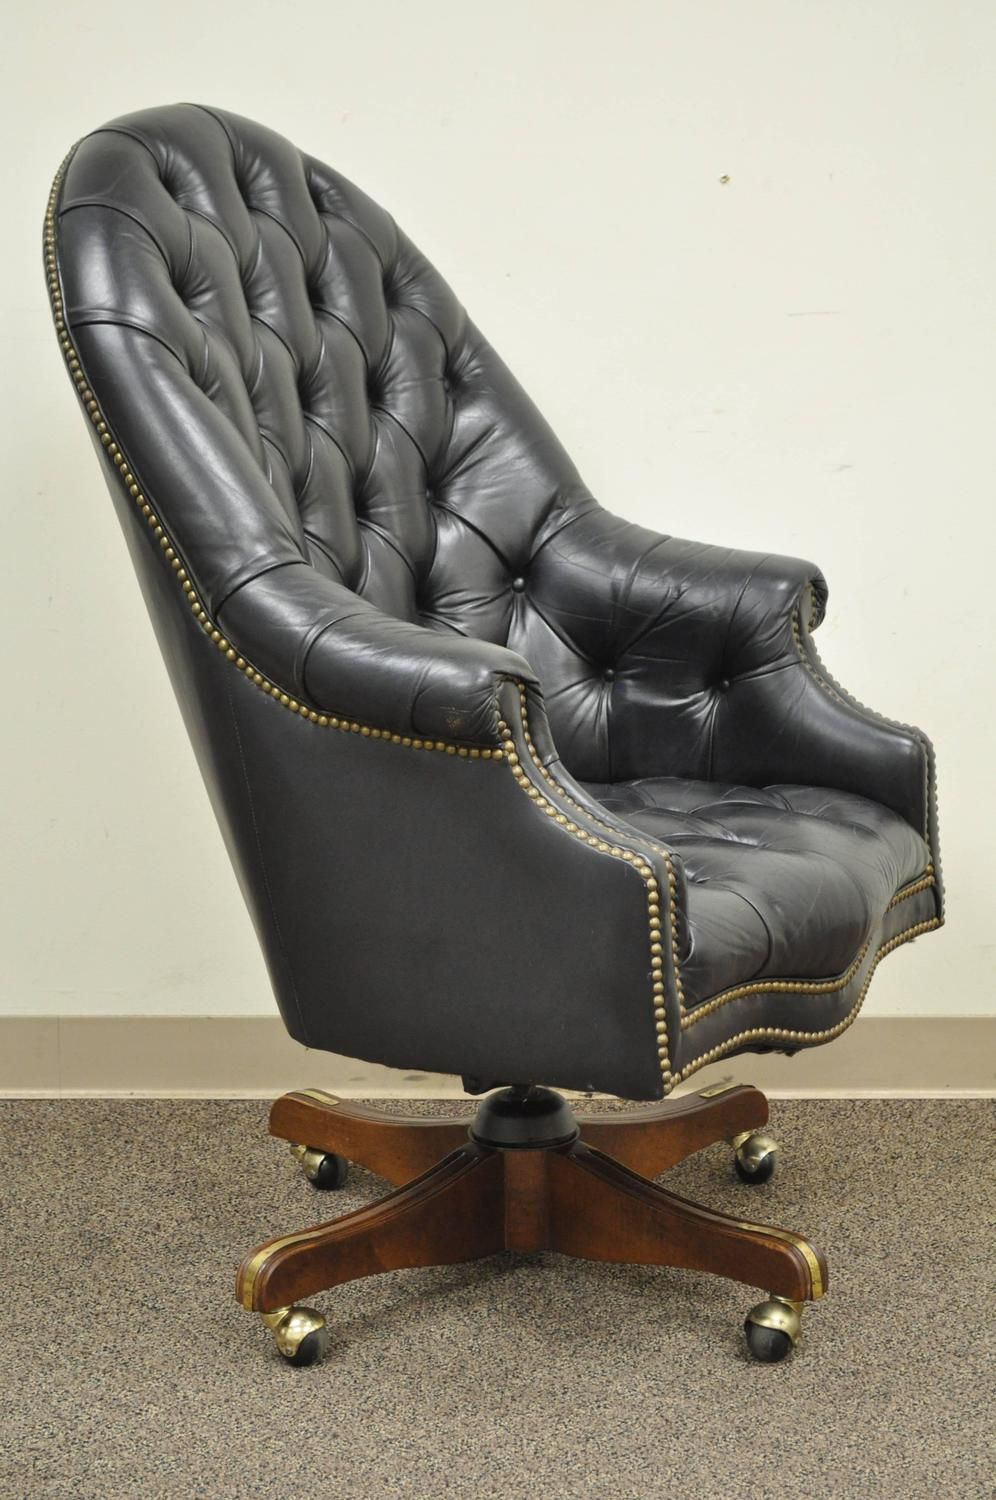 hight resolution of vintage deep tufted black leather english chesterfield style office desk chair 2